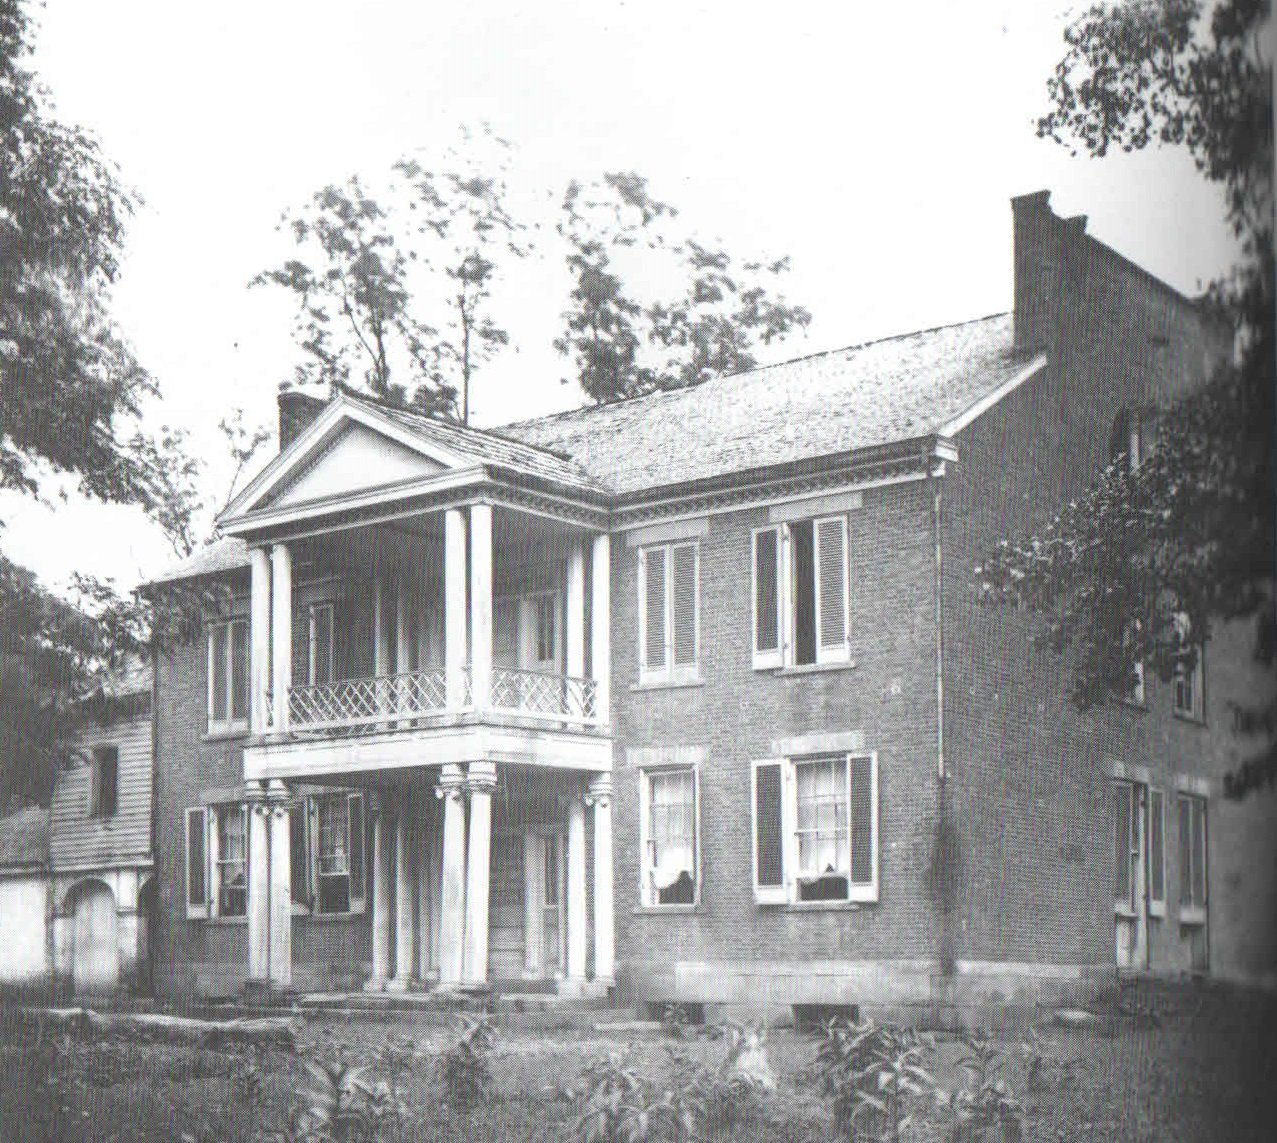 Valcoulon mansion in 1880... built at Ft. Tackett site